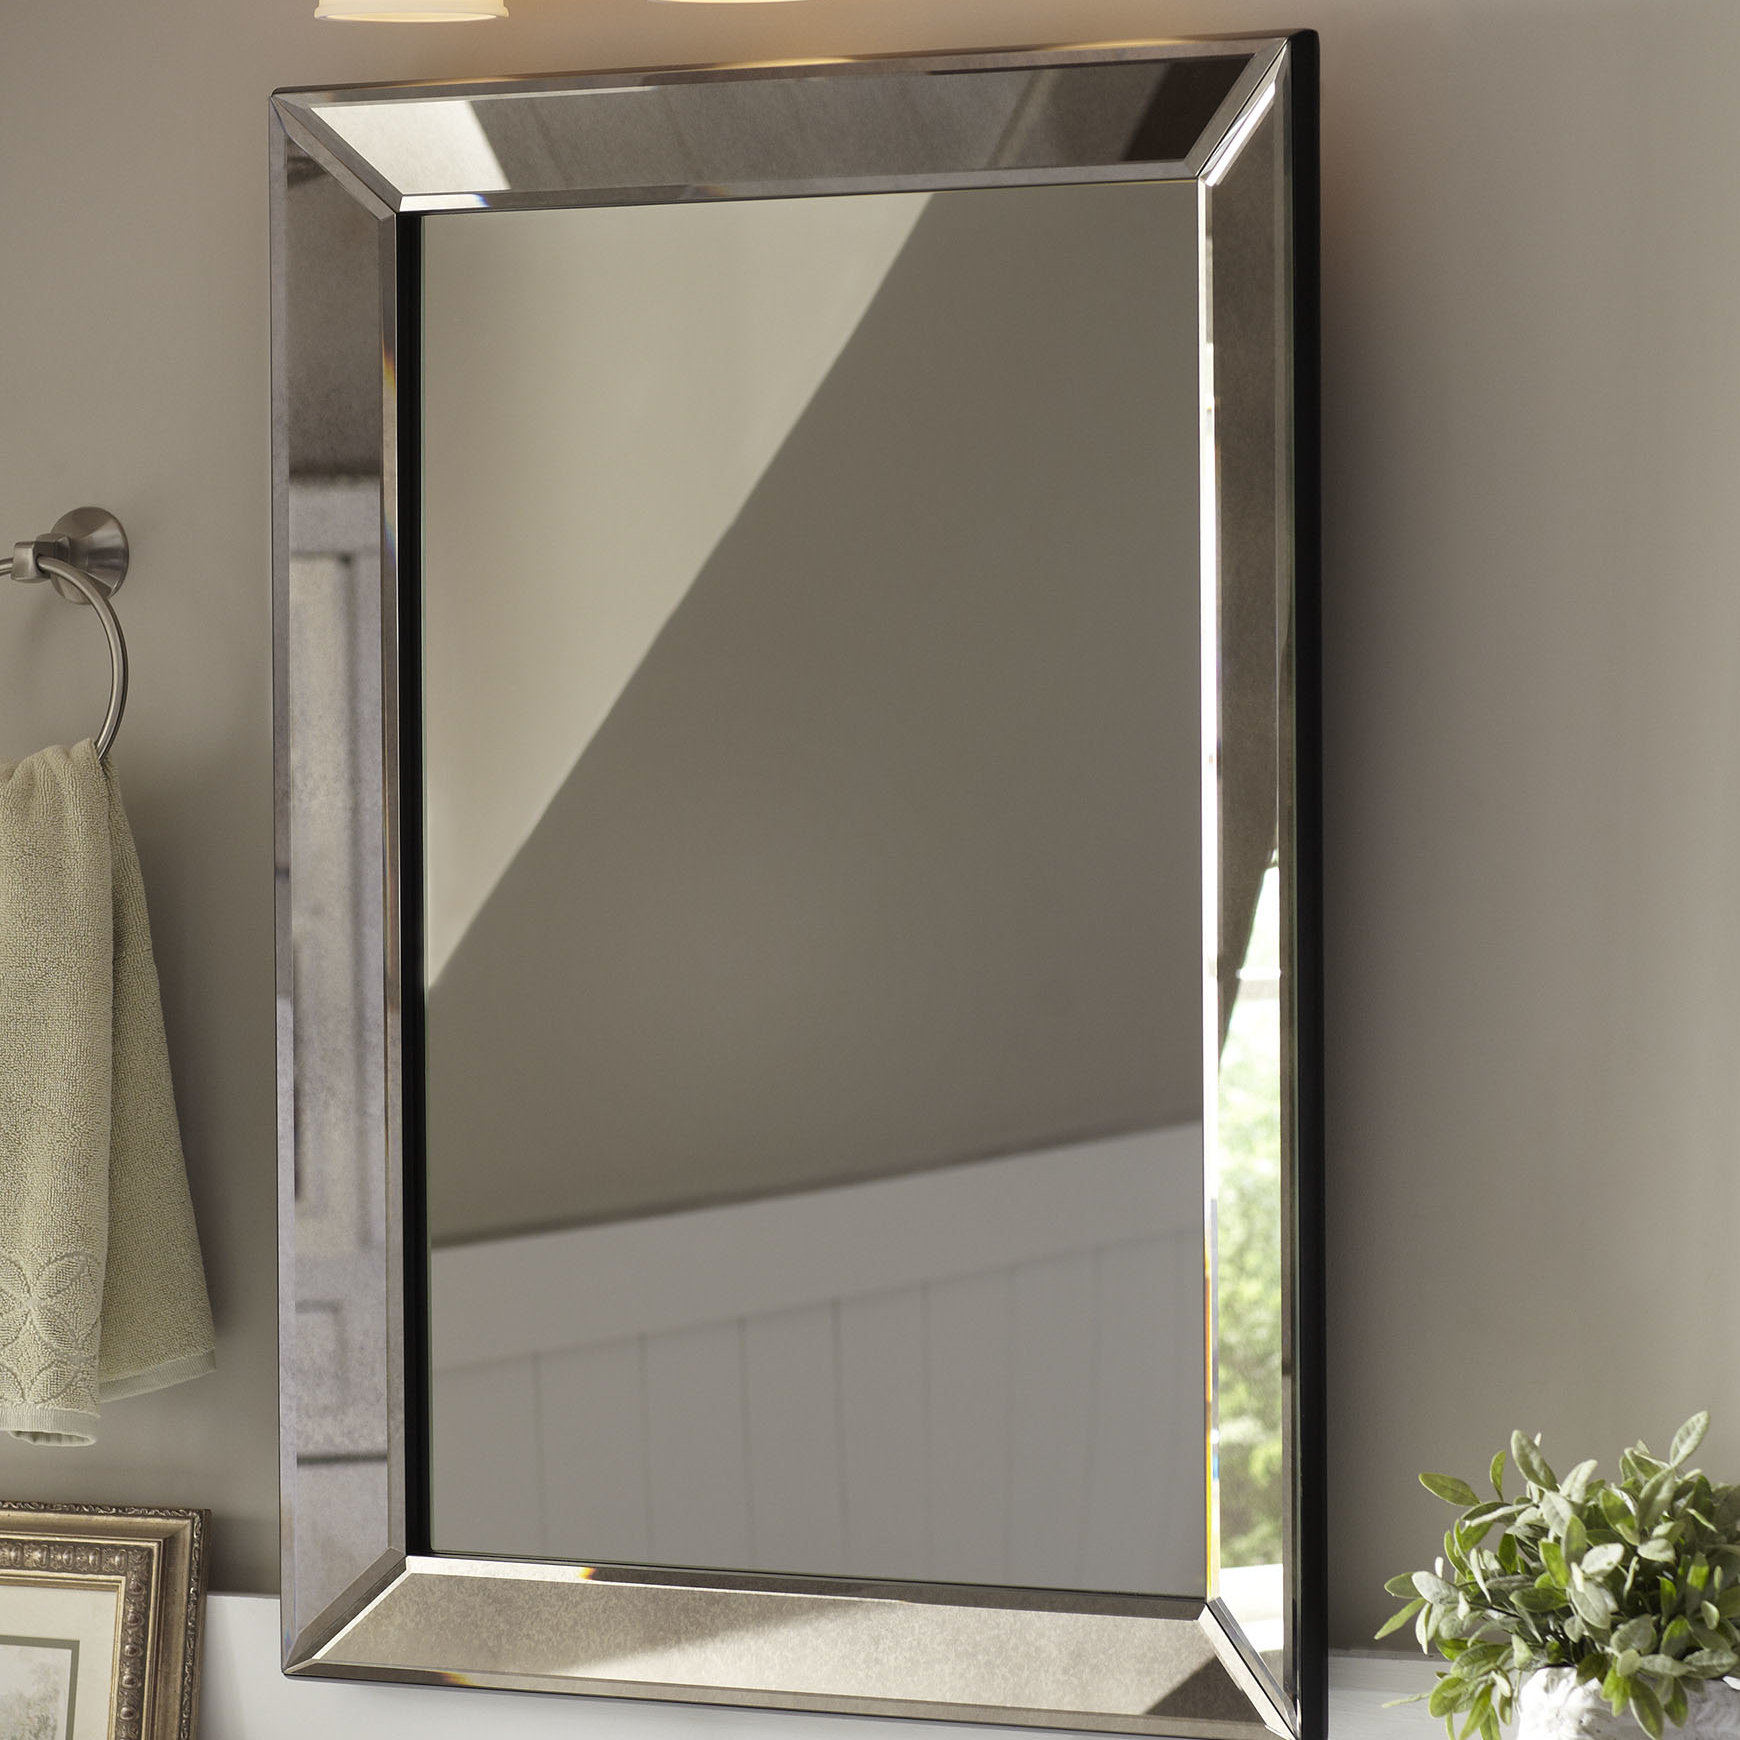 Farmhouse Mirrors | Birch Lane Throughout Beaded Accent Wall Mirrors (View 18 of 30)